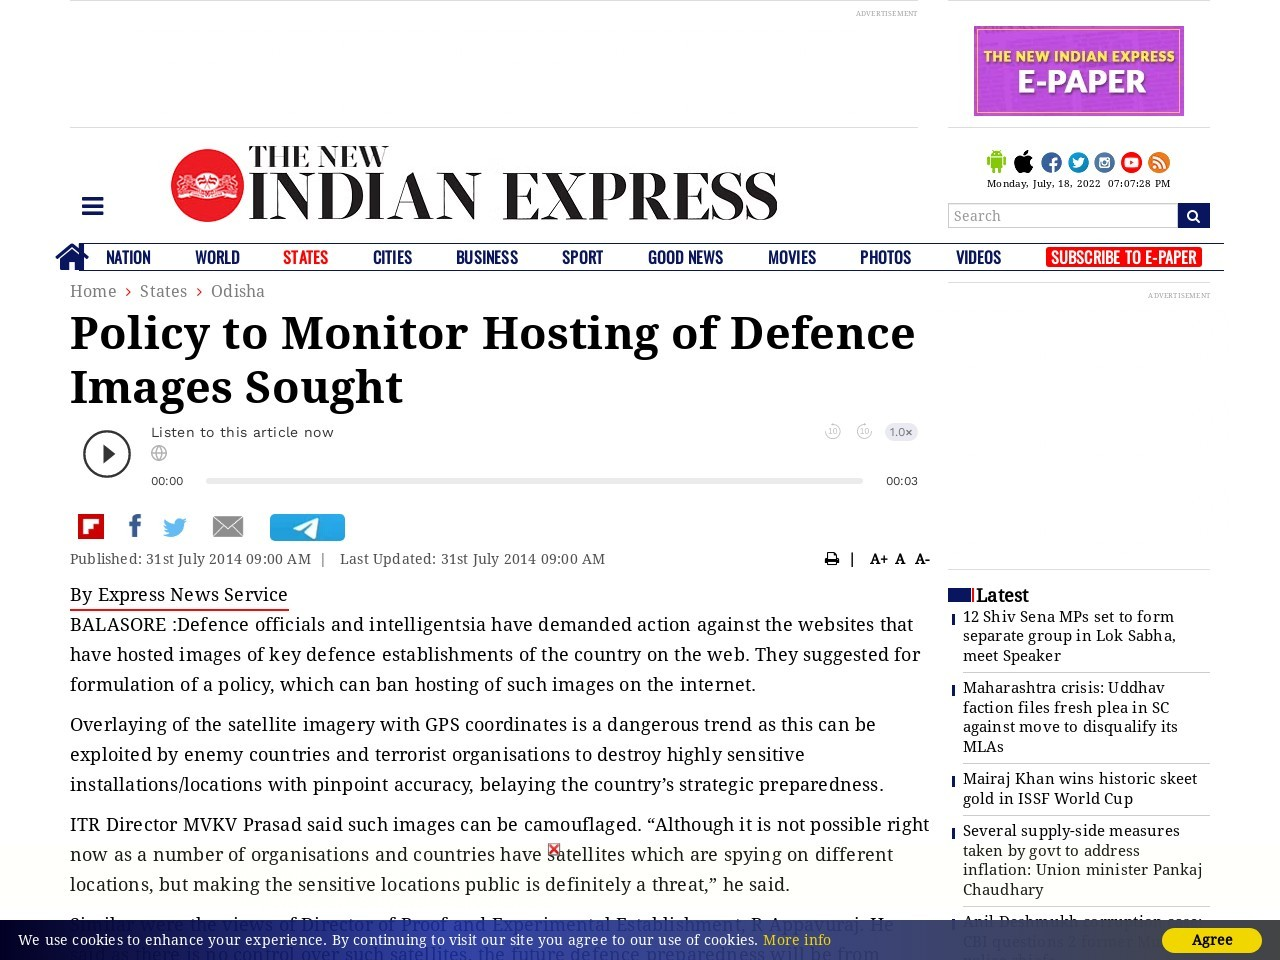 Policy to Monitor Hosting of Defence Images Sought